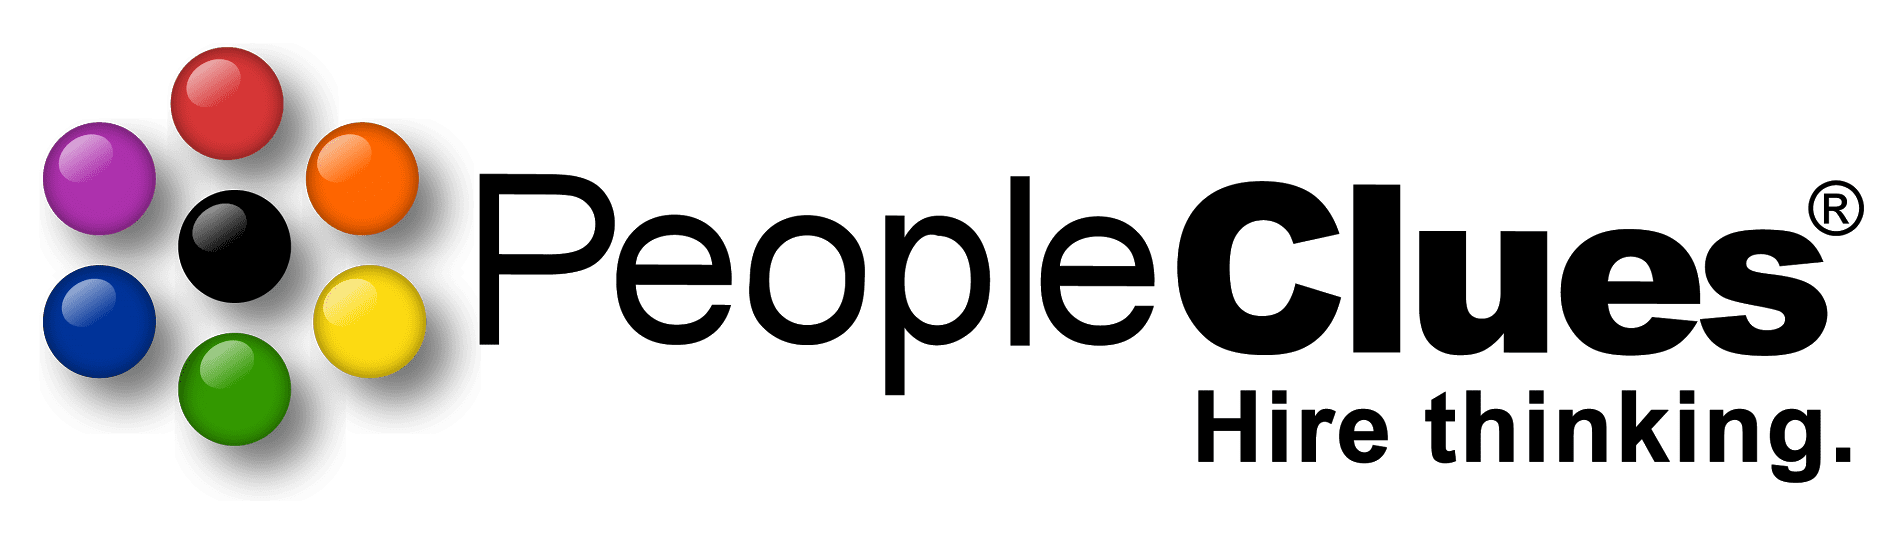 peopleclues-2016